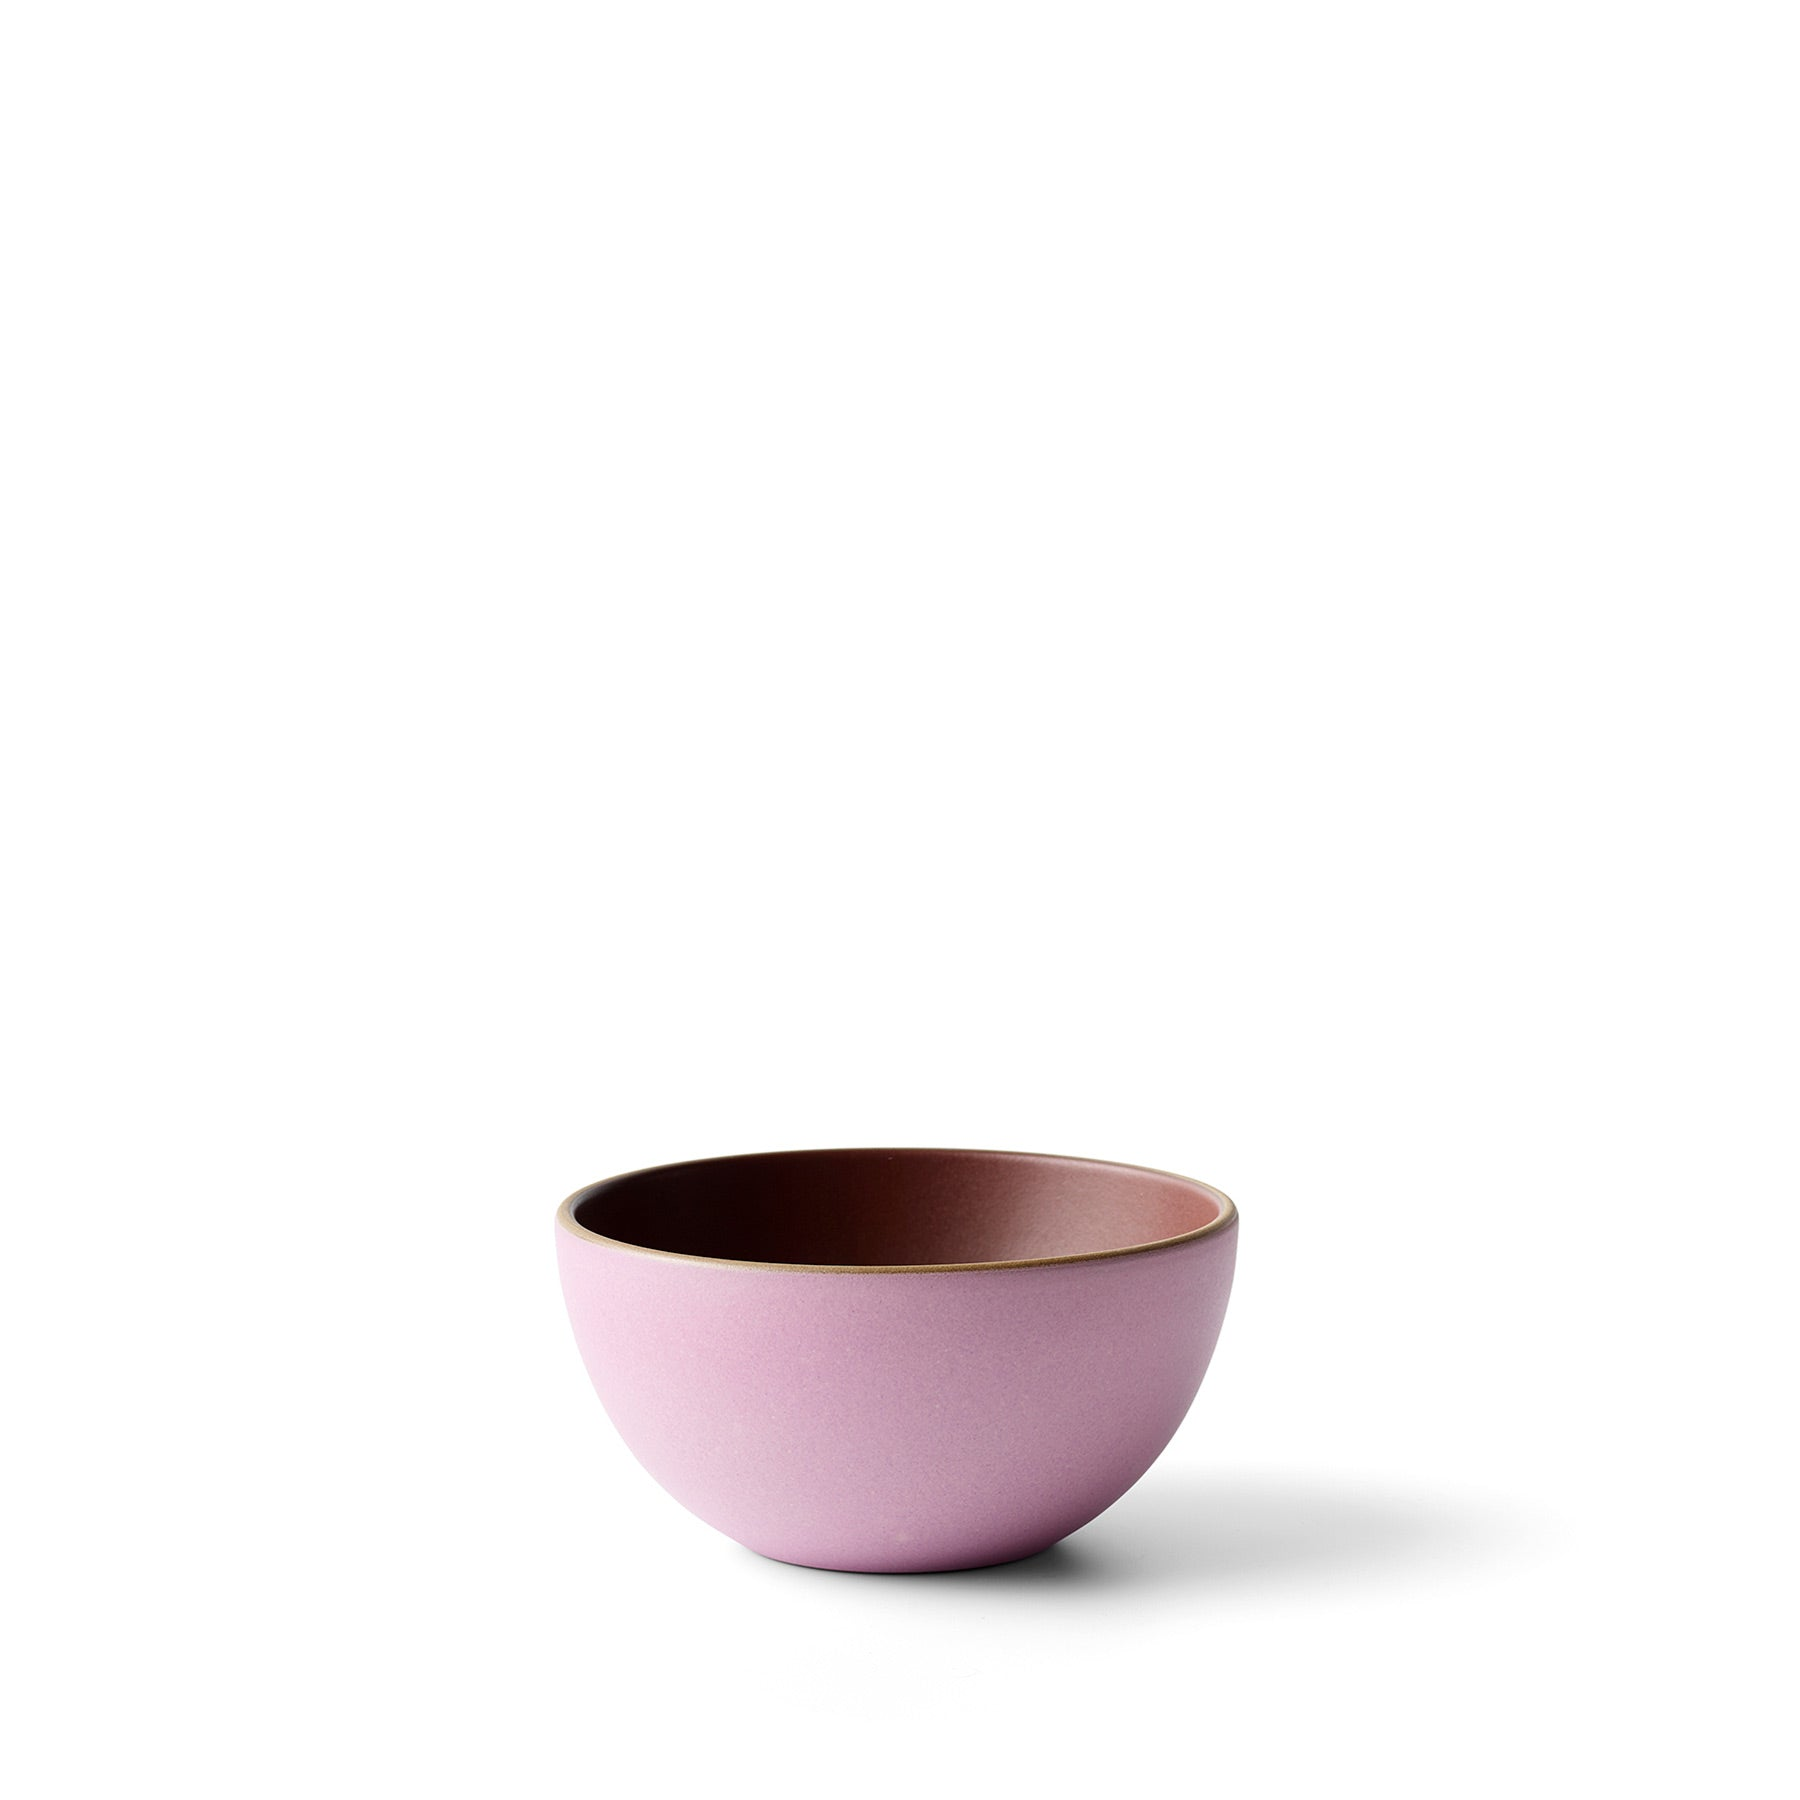 Plaza Cereal Bowl in Black Plum/Wildflower Zoom Image 1